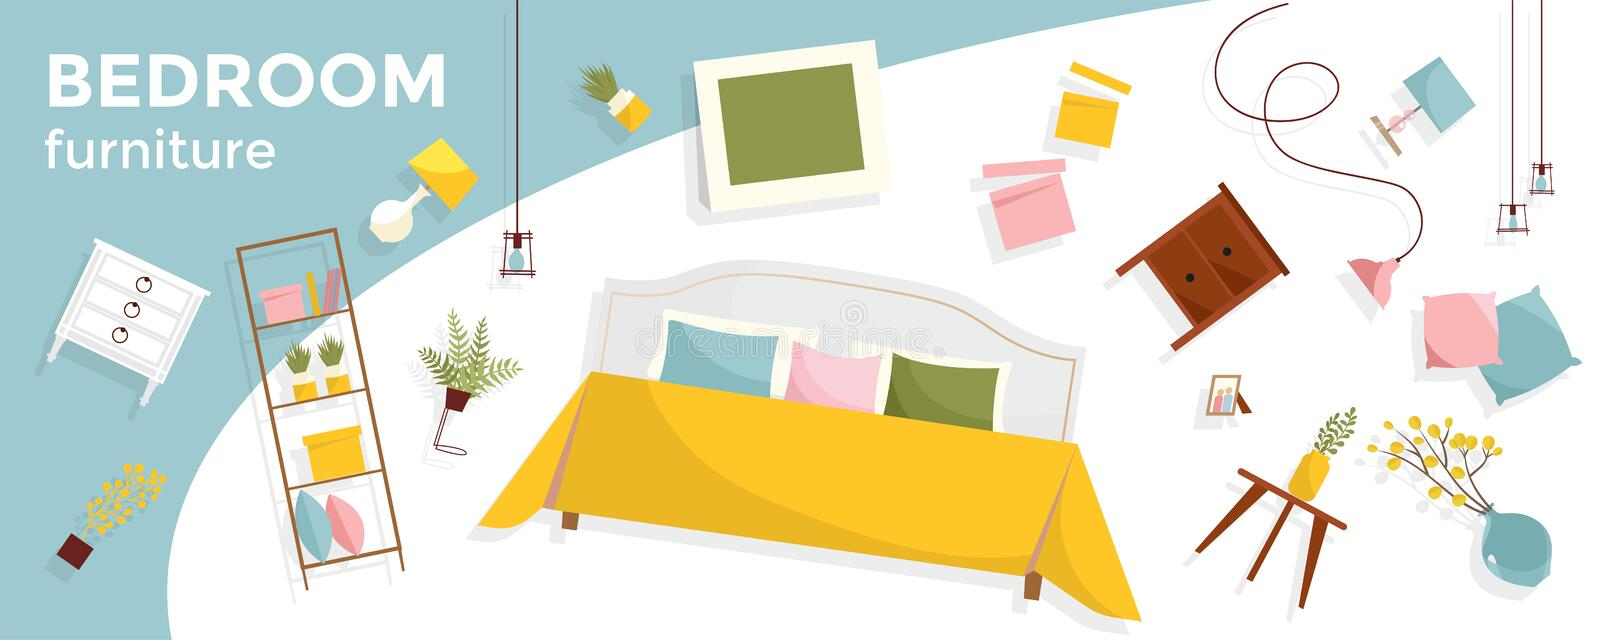 Horizontal banner with a lot of flying Bedroom furniture and text. Interior items - bed, nightstands, plants, pictures, pillows. vector illustration